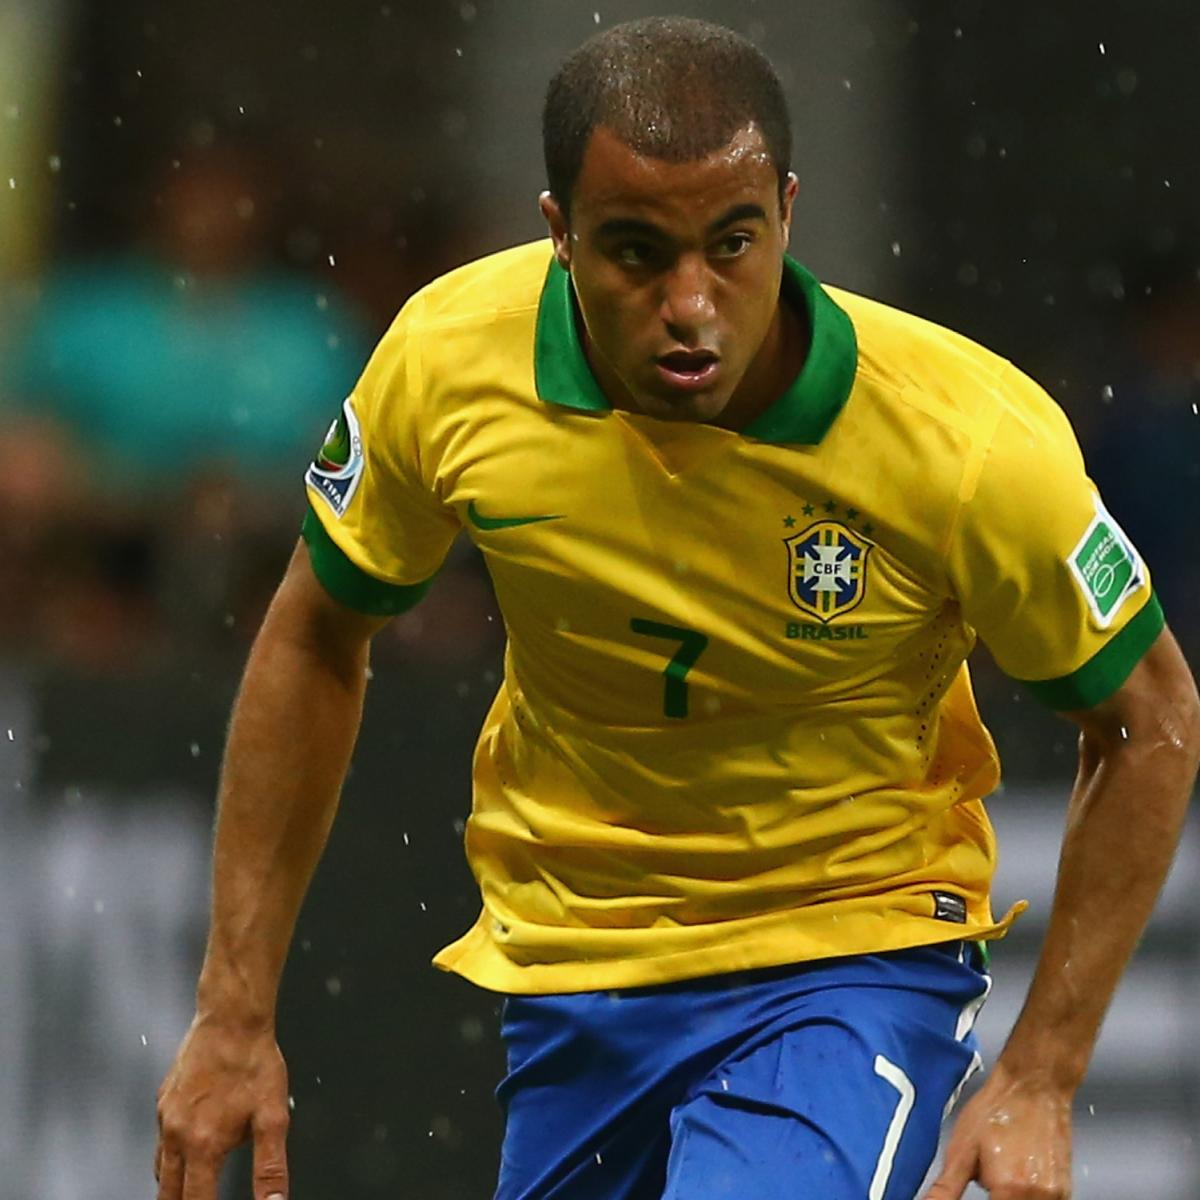 Lucas Moura To Psg Price: Lucas Moura Injury: Updates On PSG And Brazil Star's Foot